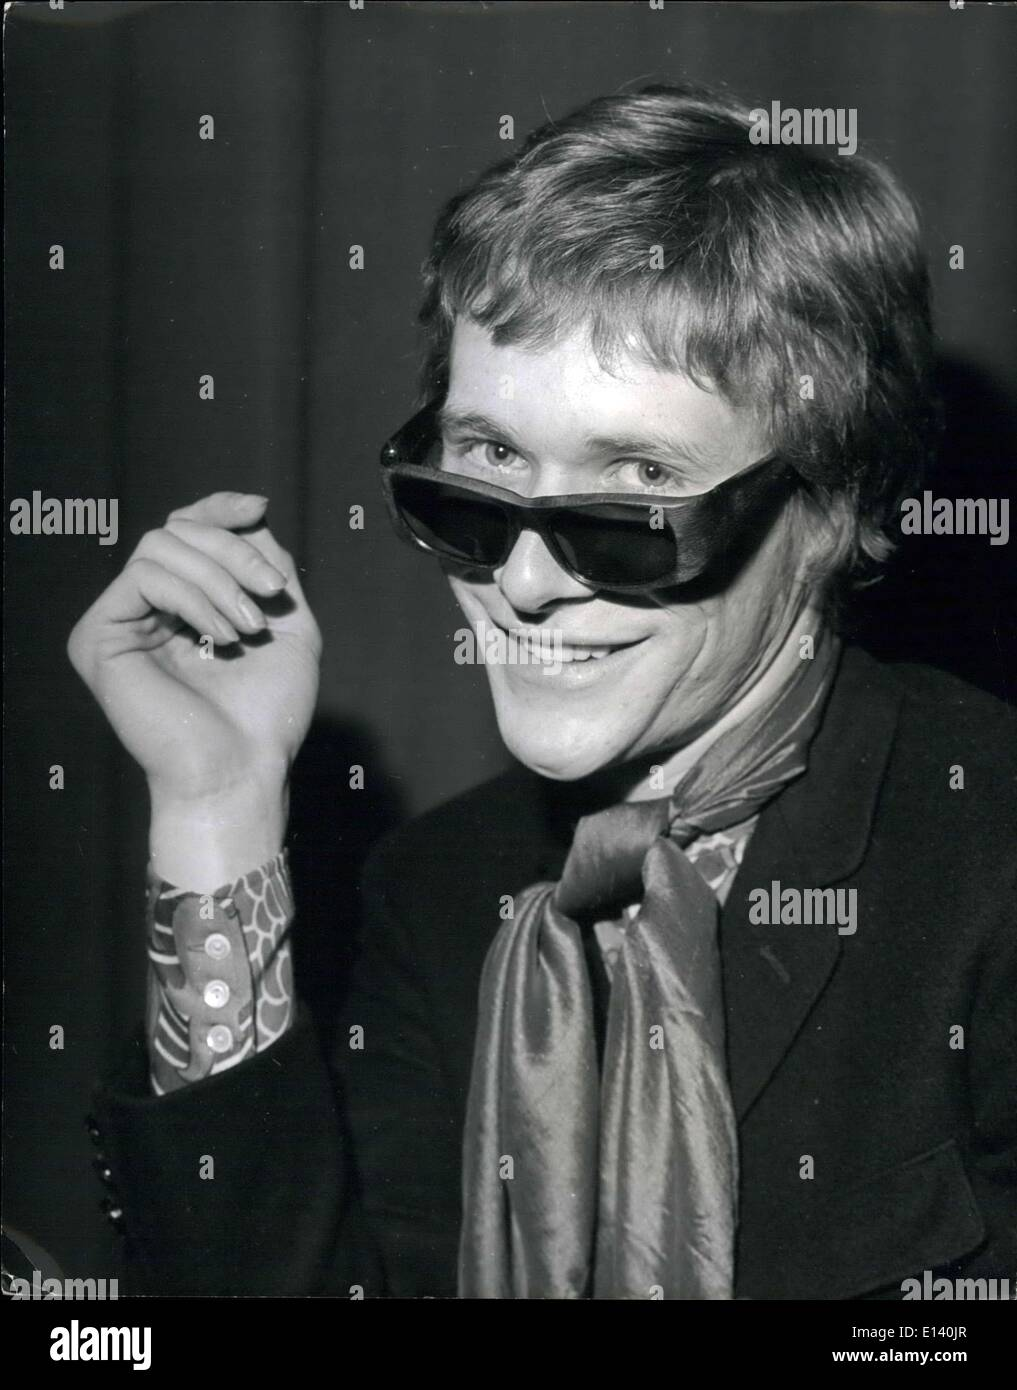 Mar. 31, 2012 - THE SUN SHINES FOR PAUL JONES. When he announced his intention of leaving the highly successful Manfredd Mann group in 1966, people thought they'd heard the last of singer Paul Jones. But they were wrong - for with hit records, a film, ' Privilege ' which also starred top model Jean Shrimpton - and much television work - including a play - Paul has proved that it has been worth his while to widen his professional interests. And now it looks like he's about to hit the charts once again with his latest single 'And the Sun will shine' - Stock Image